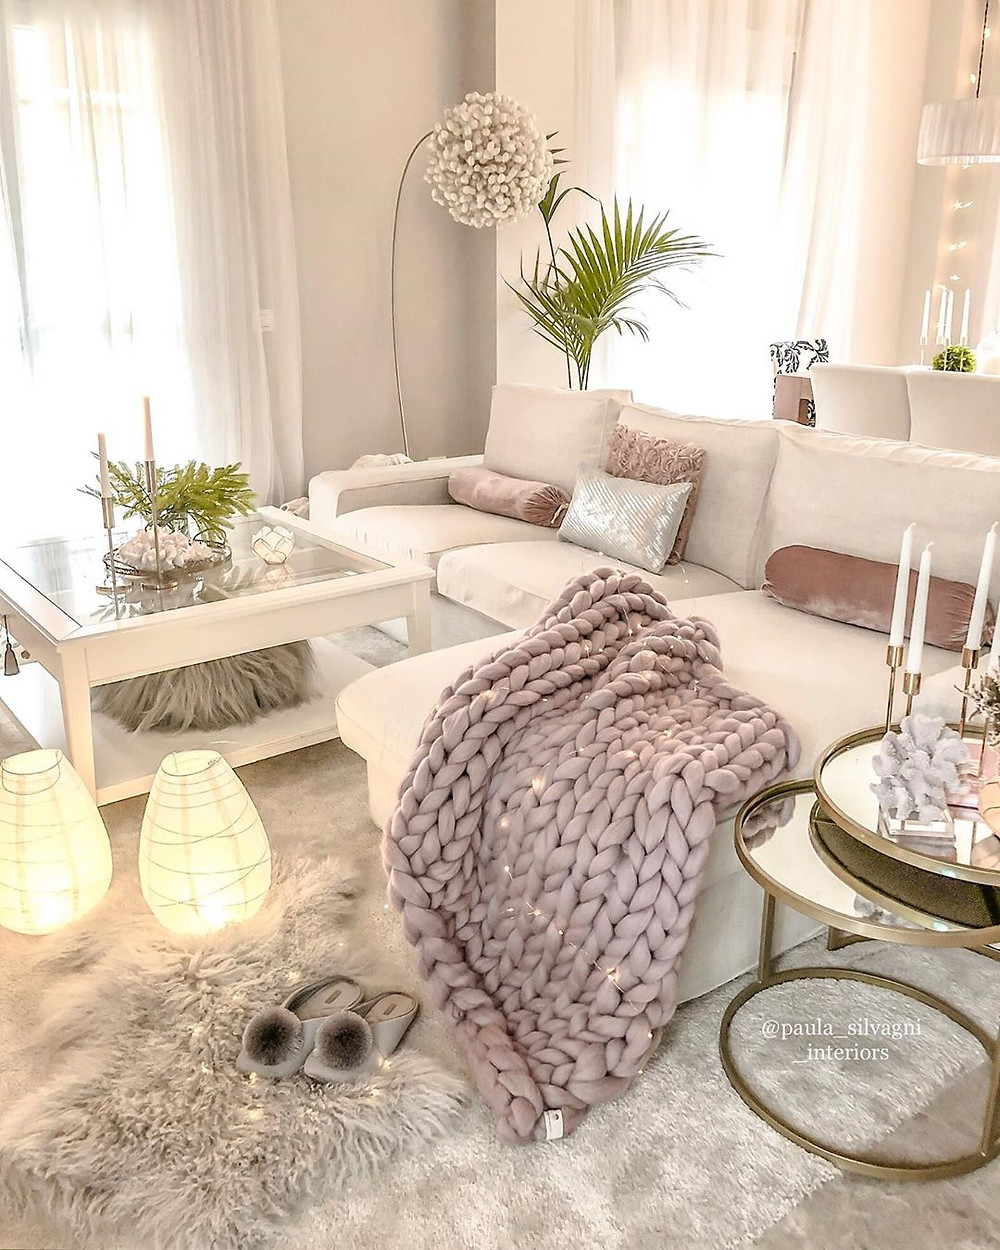 Interior Design ideas that will make your home cozier this fall & winter/ Design By Kubo